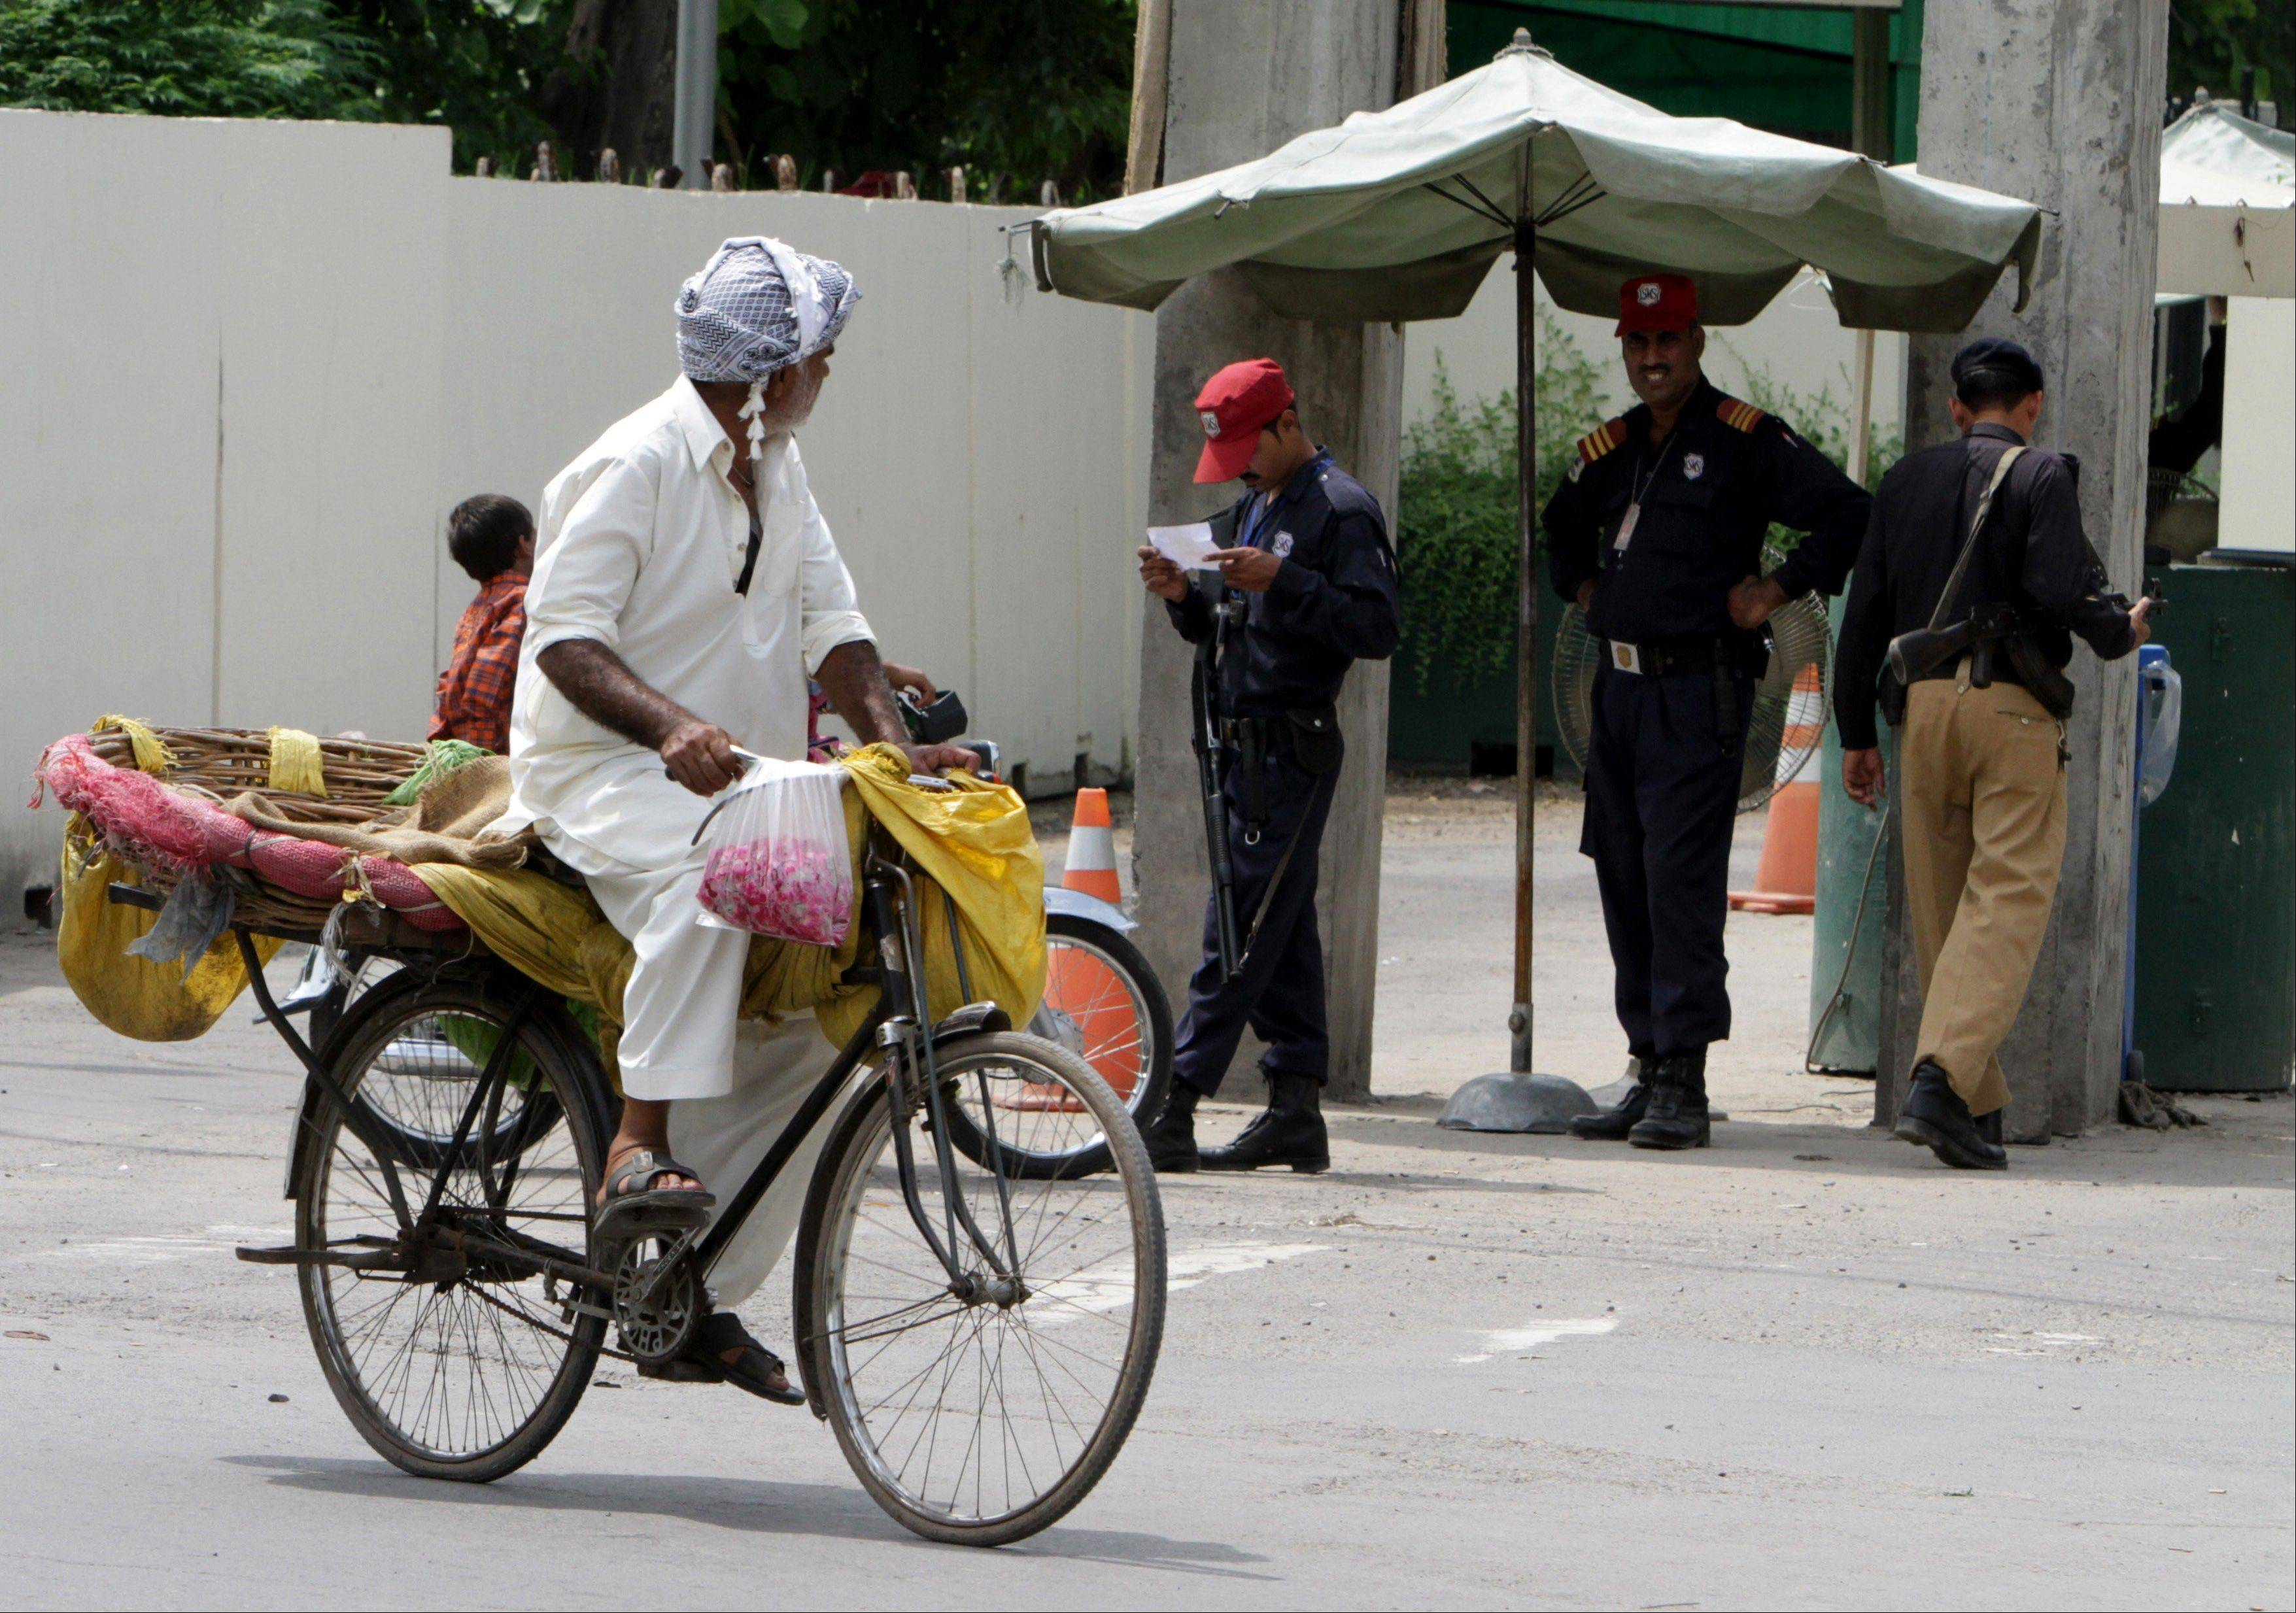 A Pakistani vendor rides his bicycle past the U.S. Consulate in Lahore, Pakistan, Friday, Aug. 9, 2013. The State Department warned Americans not to travel to Pakistan and evacuated nonessential government personnel from the country's second largest city of Lahore because of a specific threat to the consulate there, a U.S. official said Friday.